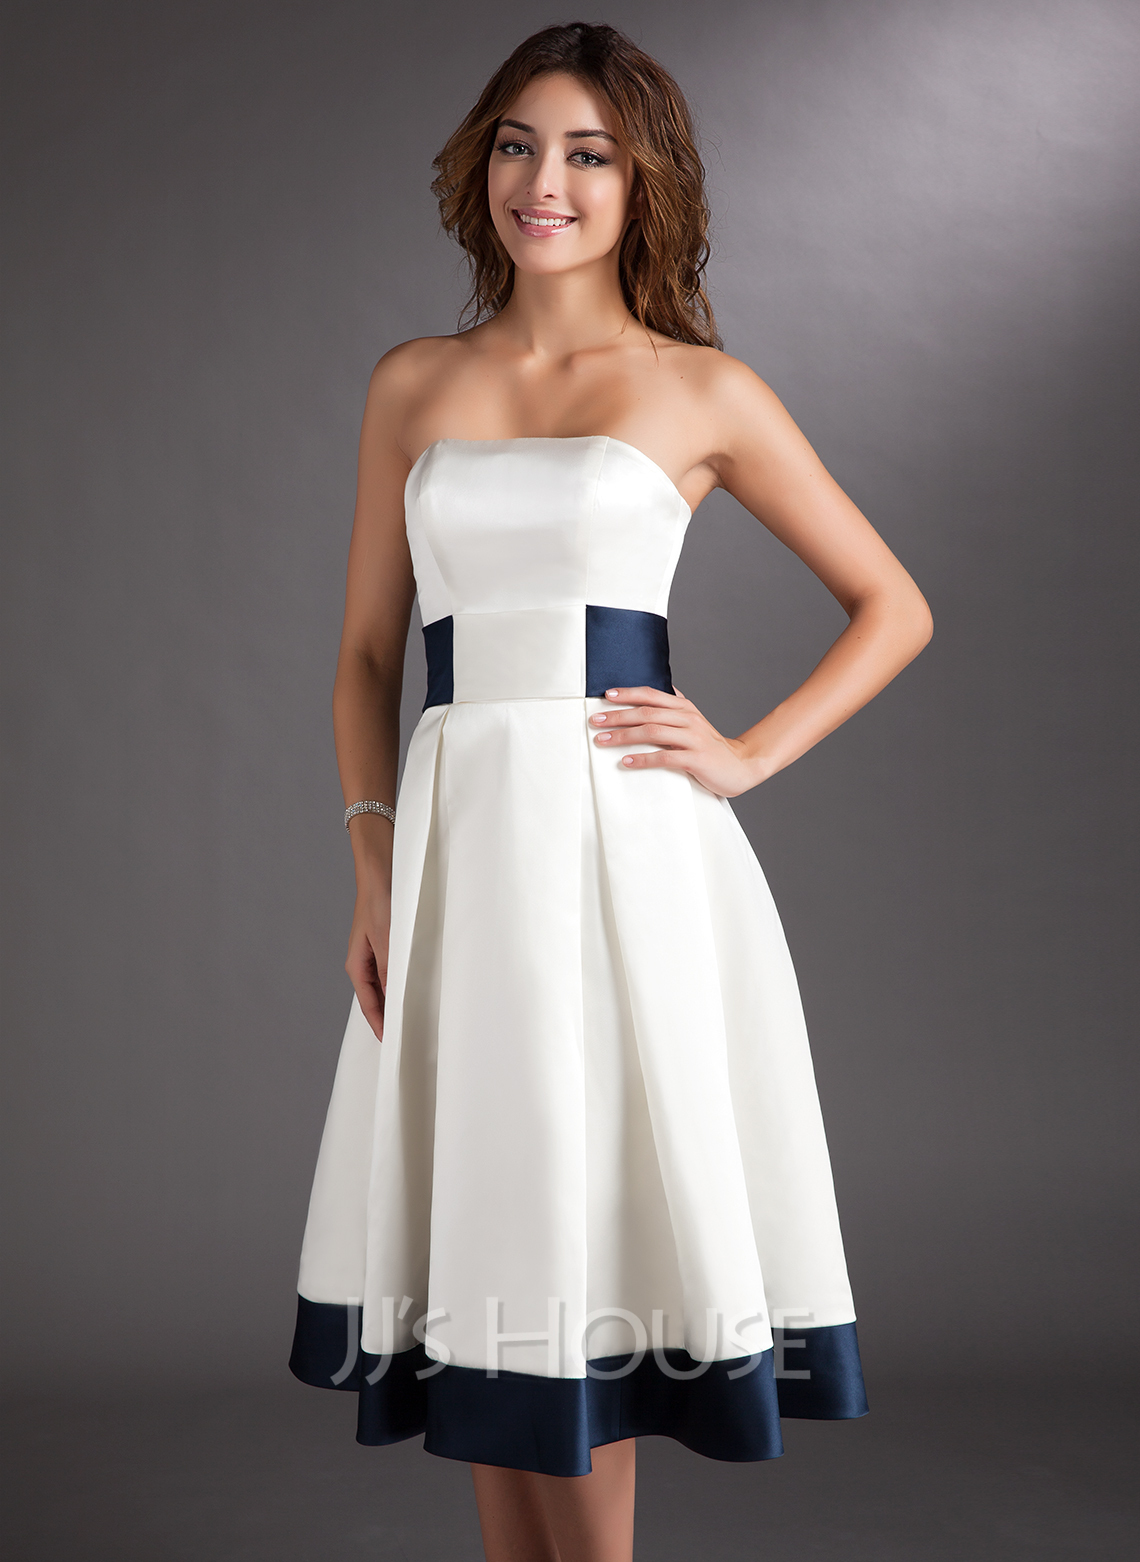 A-Line Strapless Knee-Length Satin Wedding Dress With Sash Bow(s)